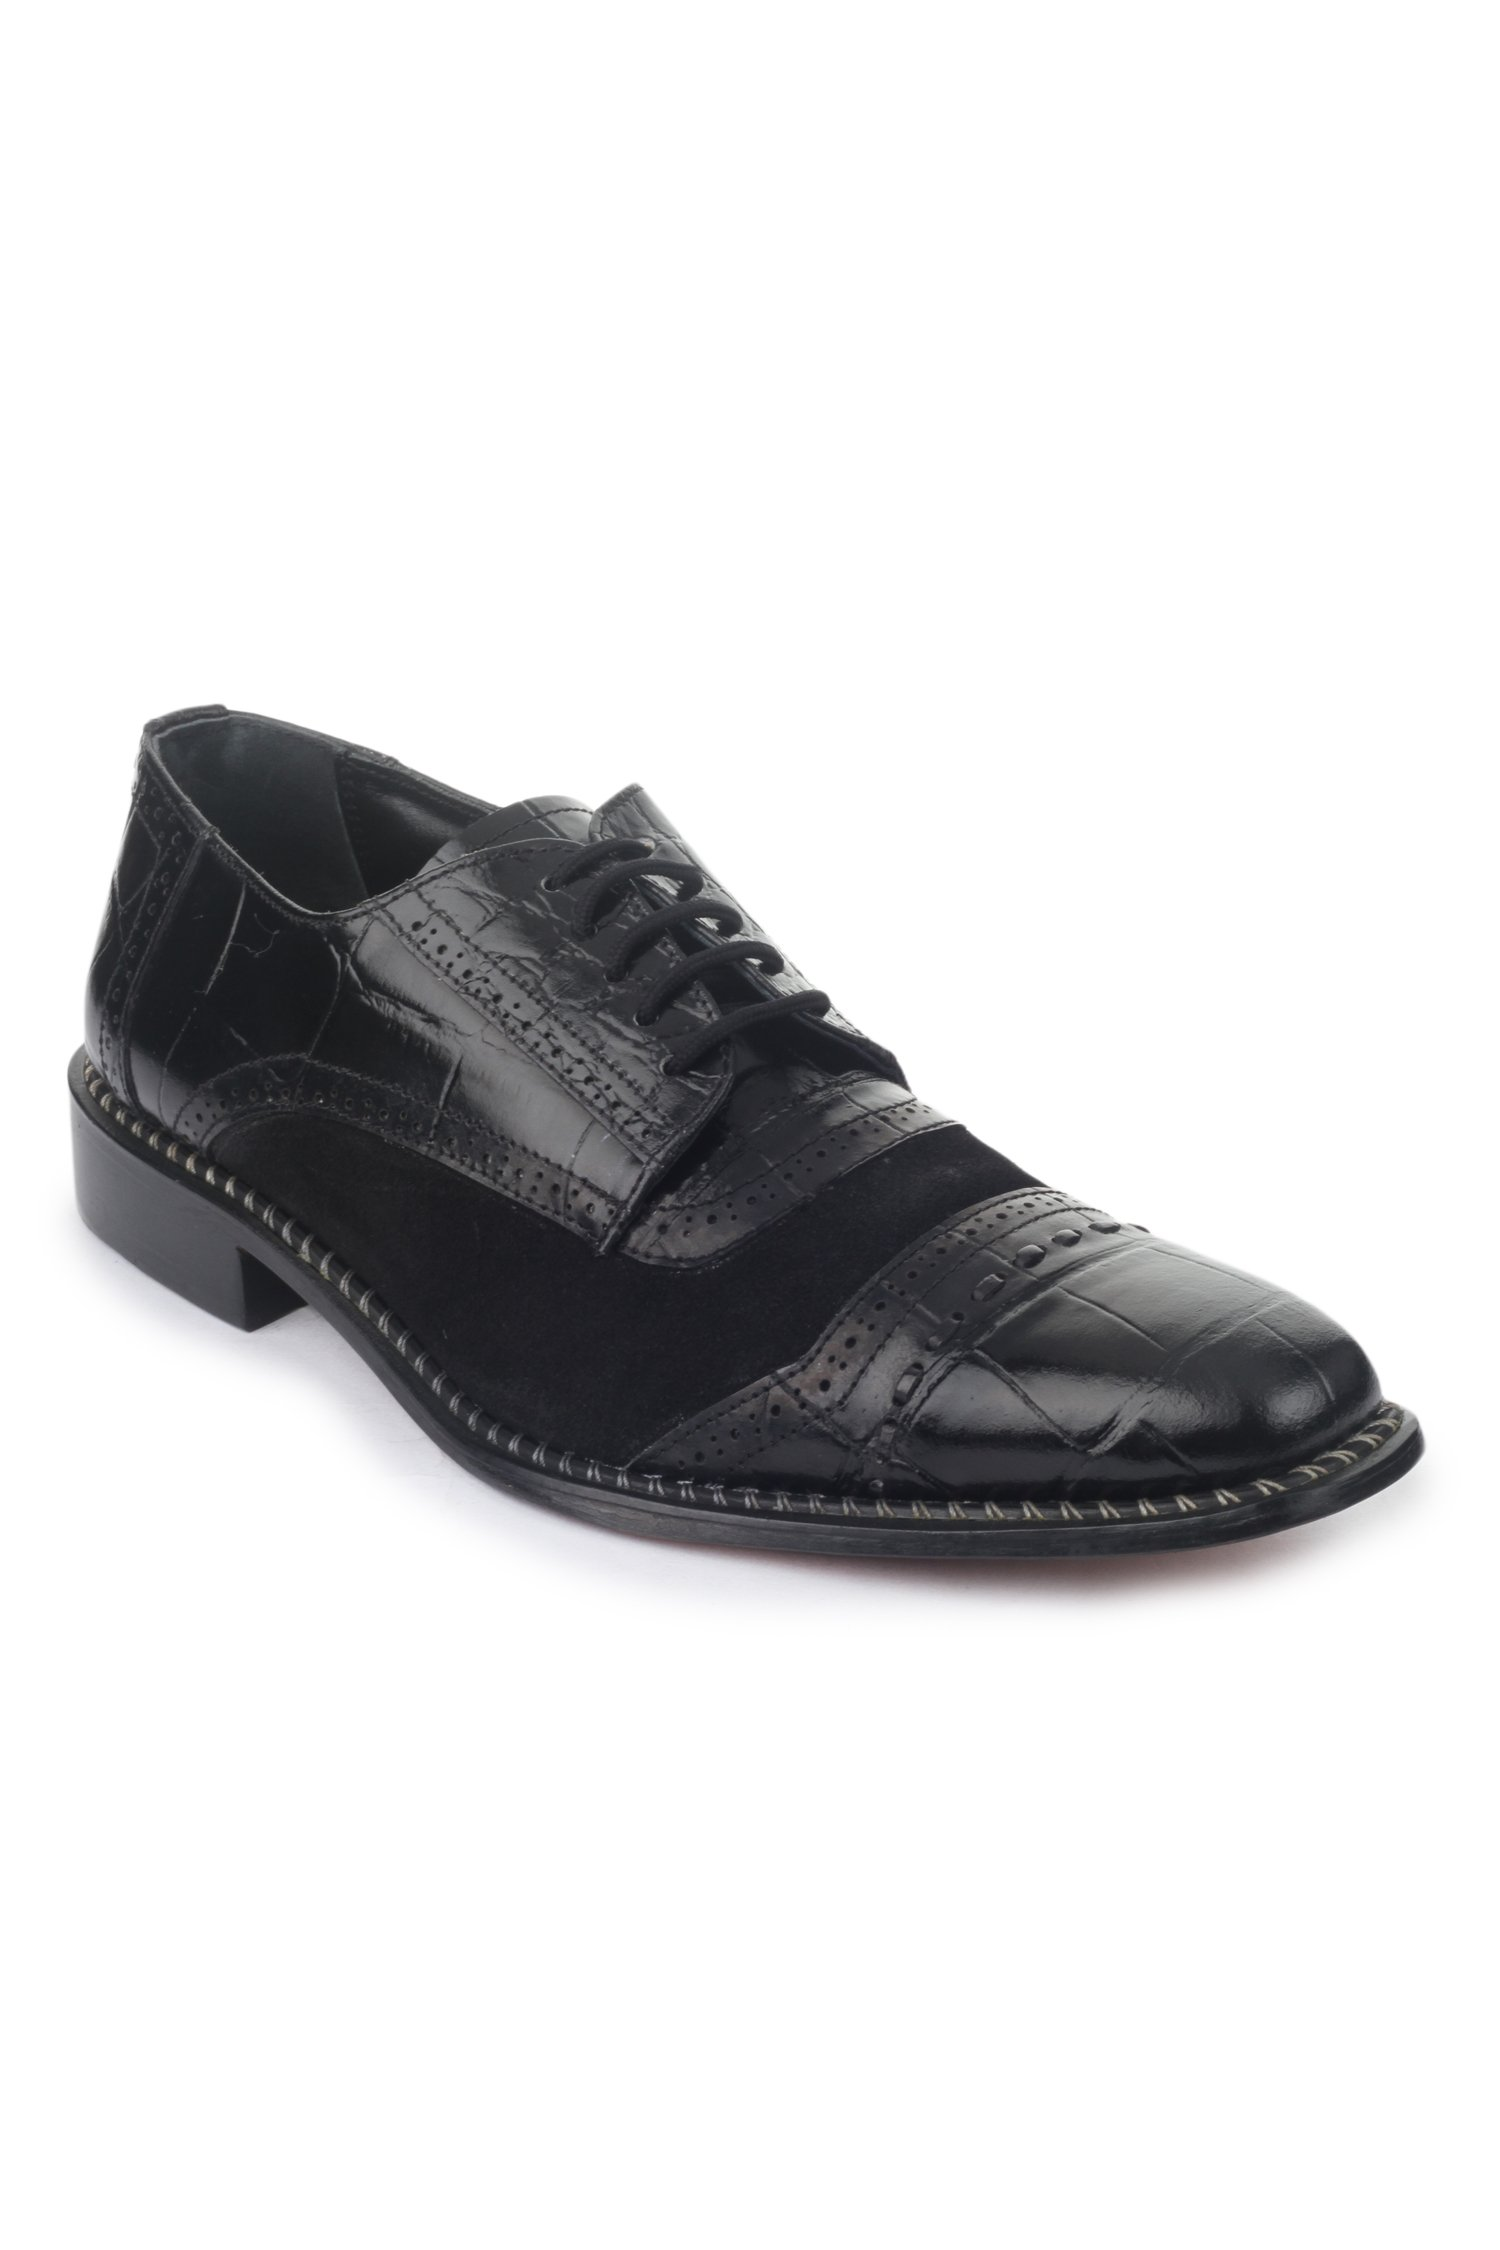 Liberty Fortune Mens Croco Printed And Suede Leather Shoe Black 10 D(M) Us 14